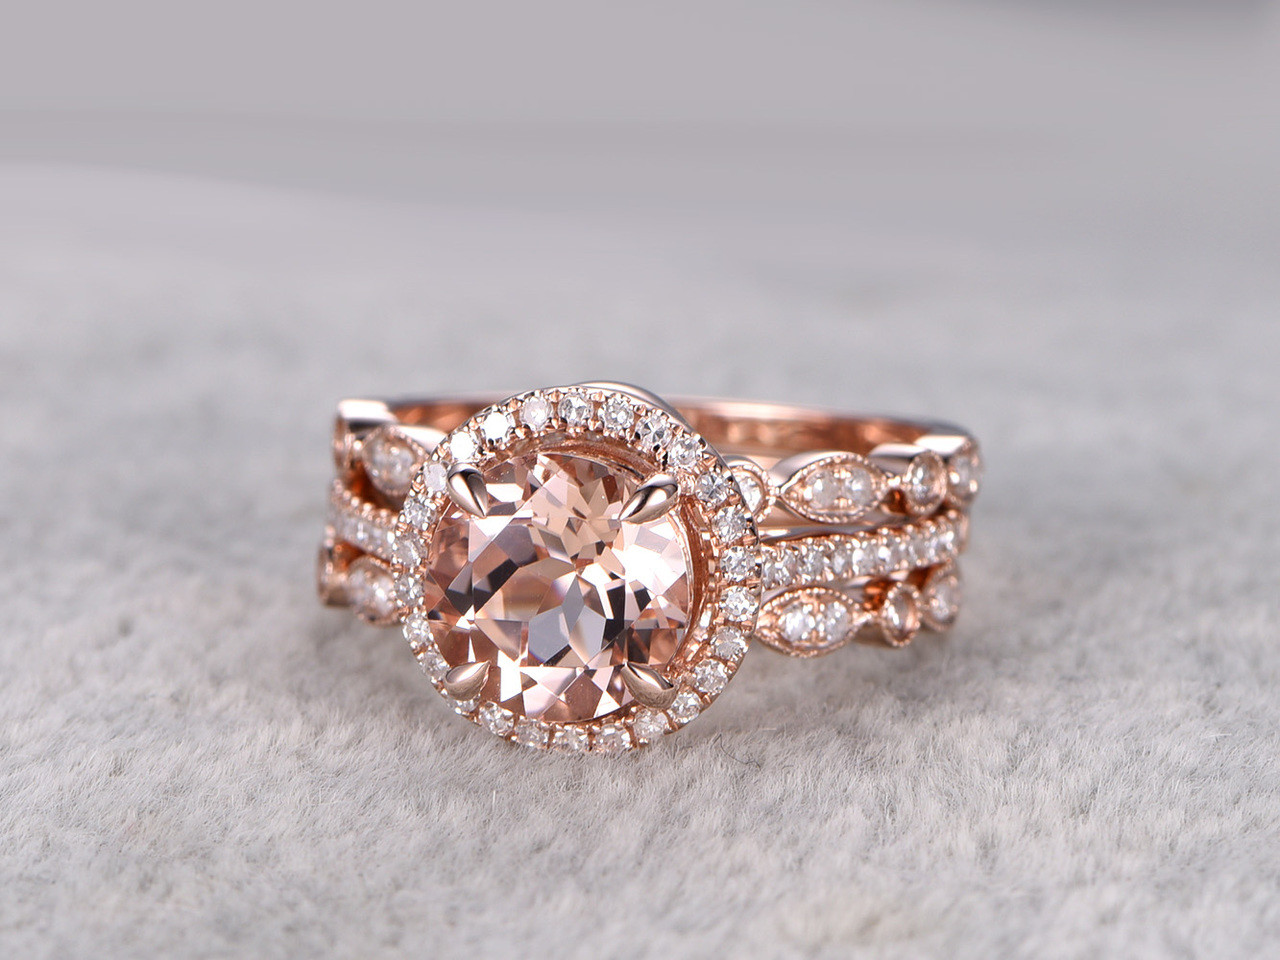 3pcs Round Morganite Wedding Set Curved Diamond Bridal Ring 14k Rose